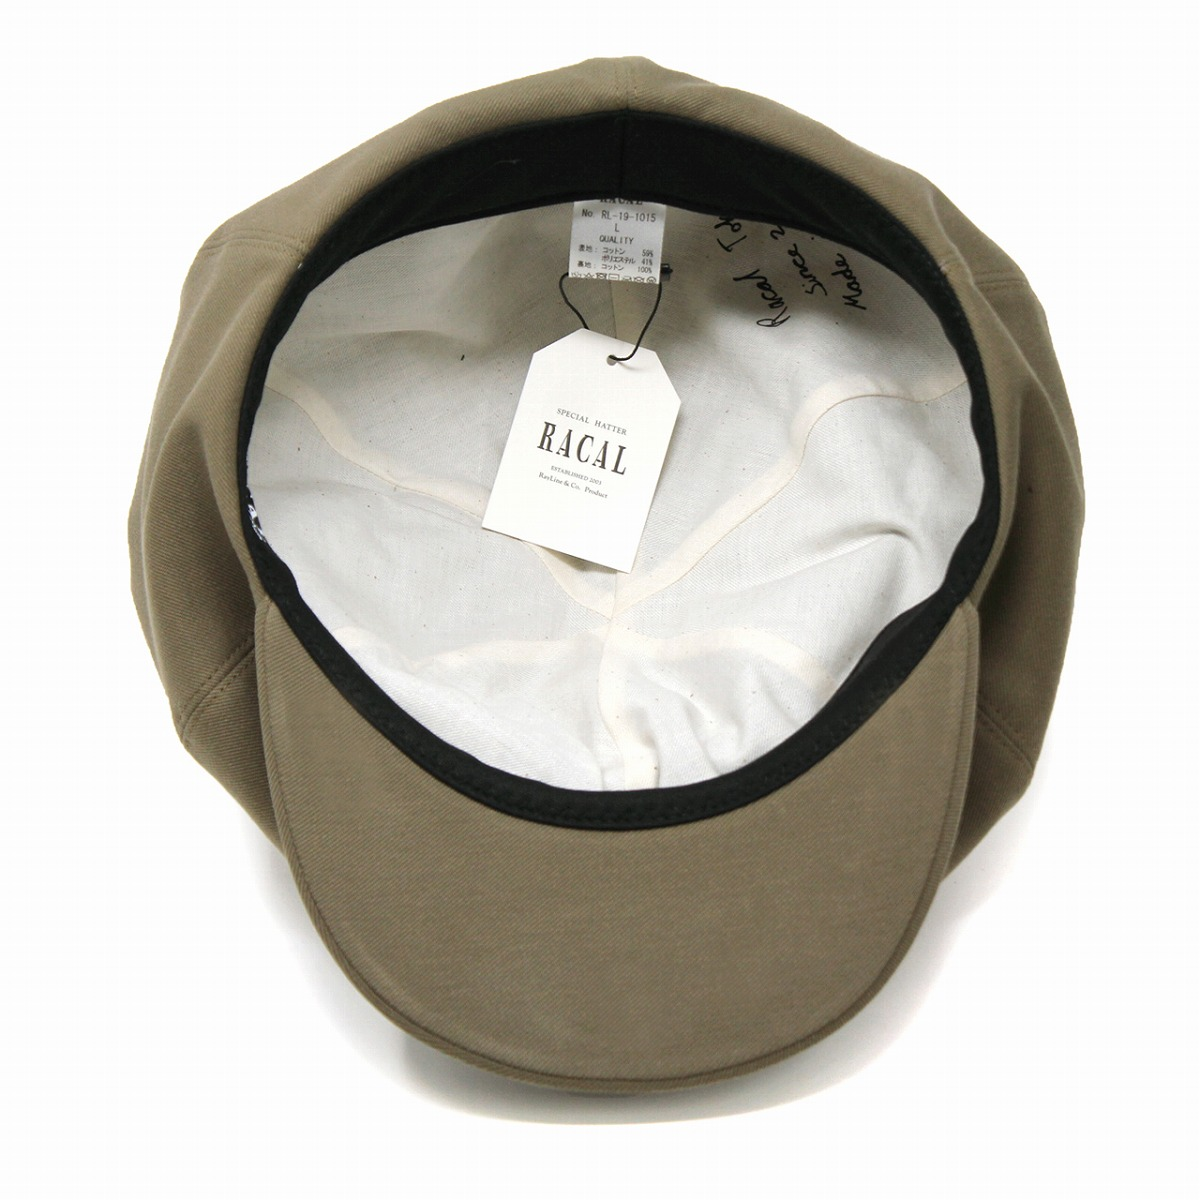 Big silhouette CAS hat Shin pull plain fabric racal pleats casquette hat  medium size large size / olive [newsboy cap] made in 6 panel casquette hats